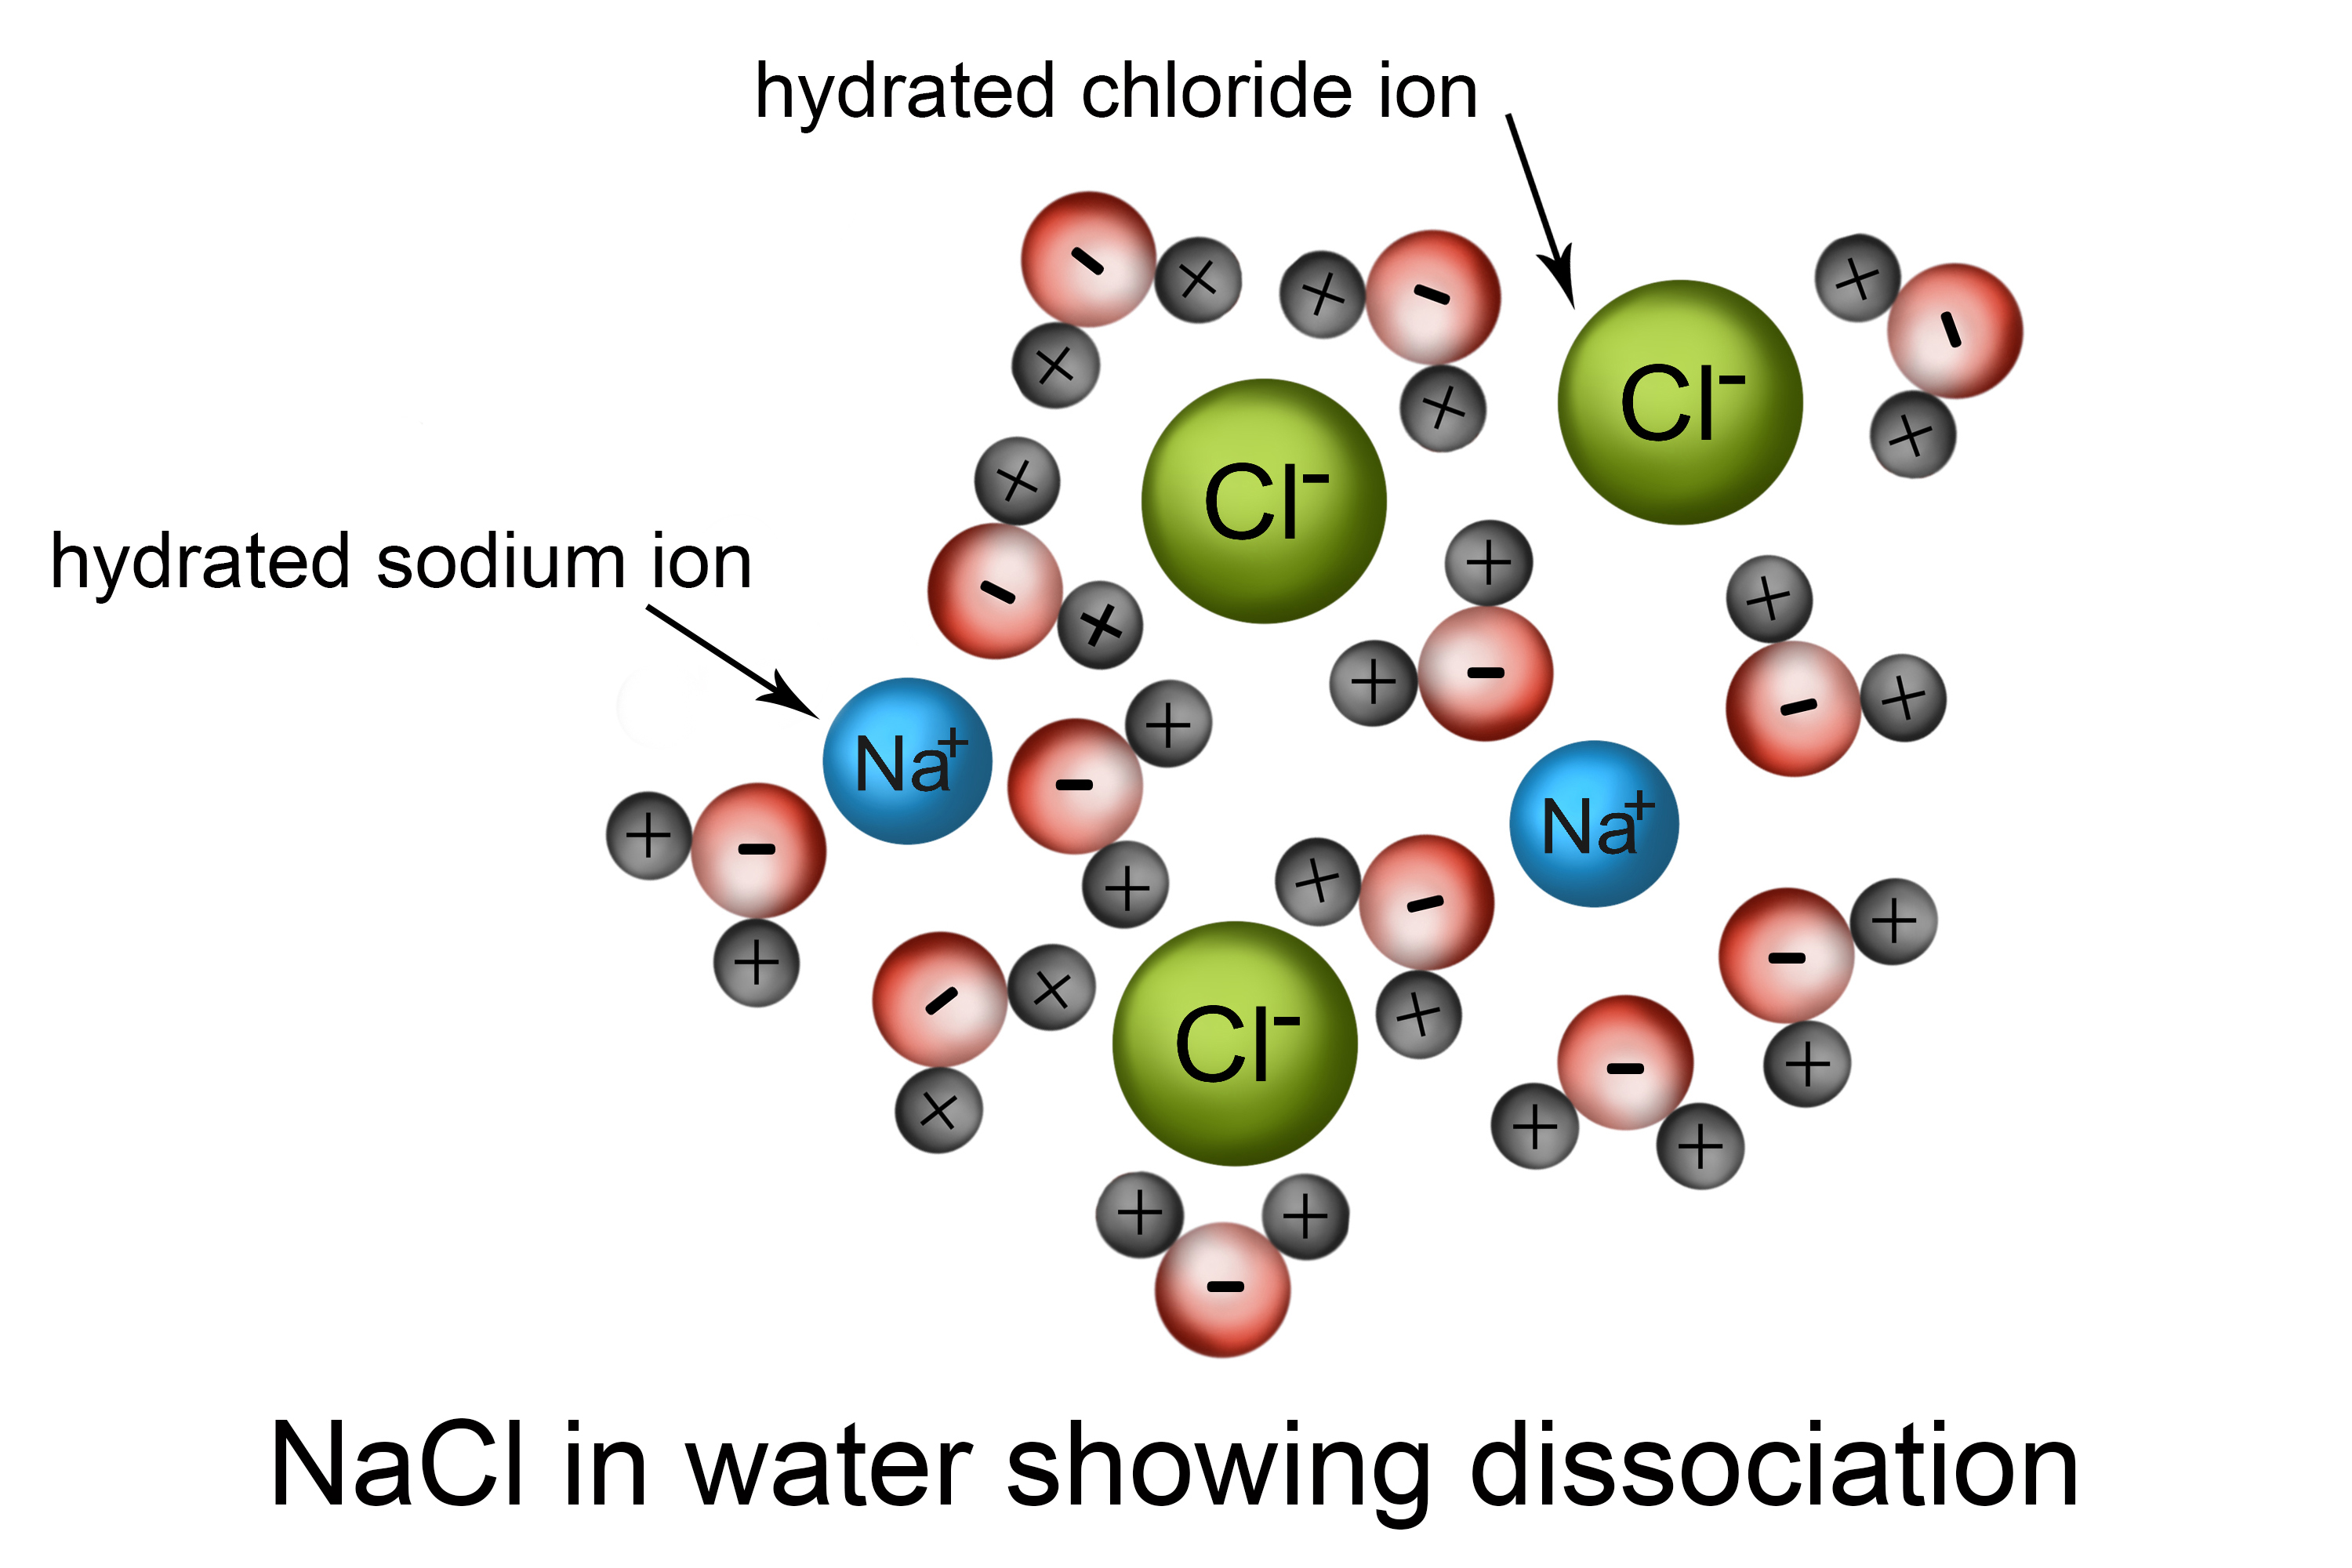 Particle structure of NaCI in water showing dissociation